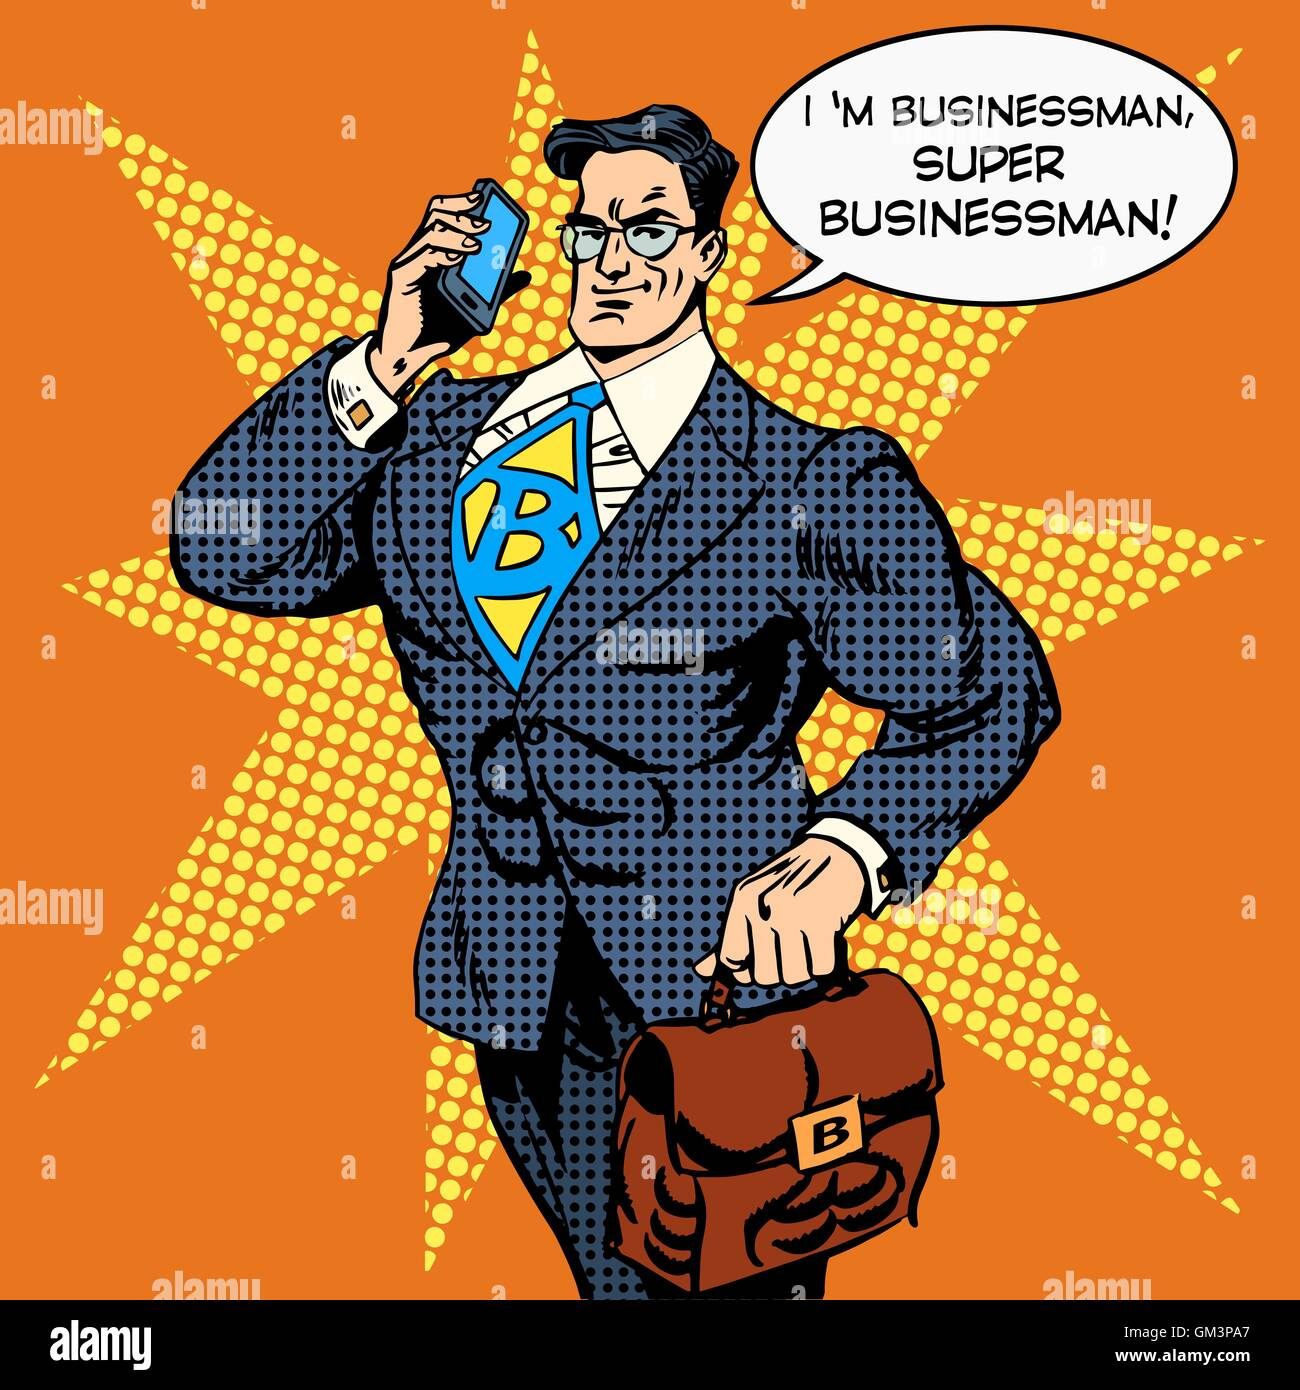 super businessman answering phone call - Stock Vector